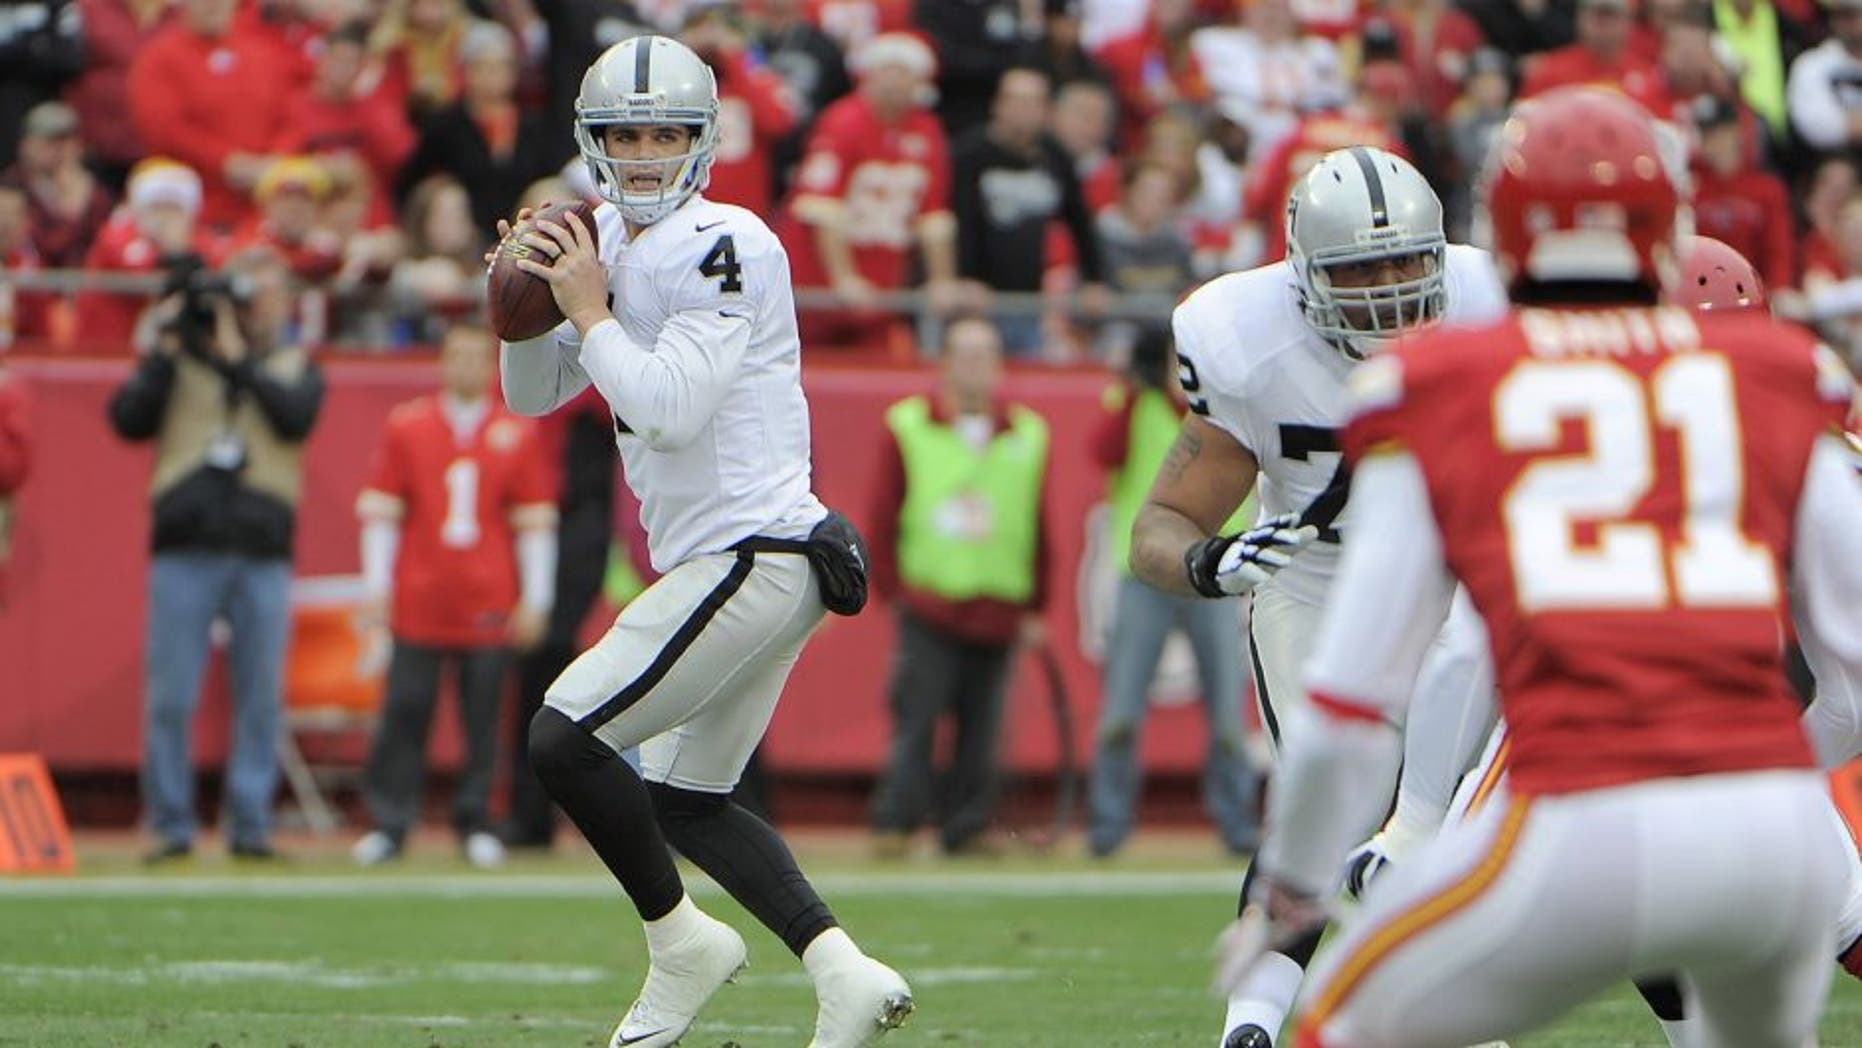 Dec 14, 2014; Kansas City, MO, USA; Oakland Raiders quarterback Derek Carr (4) throws the ball against the Kansas City Chiefs in the first half at Arrowhead Stadium. Mandatory Credit: John Rieger-USA TODAY Sports